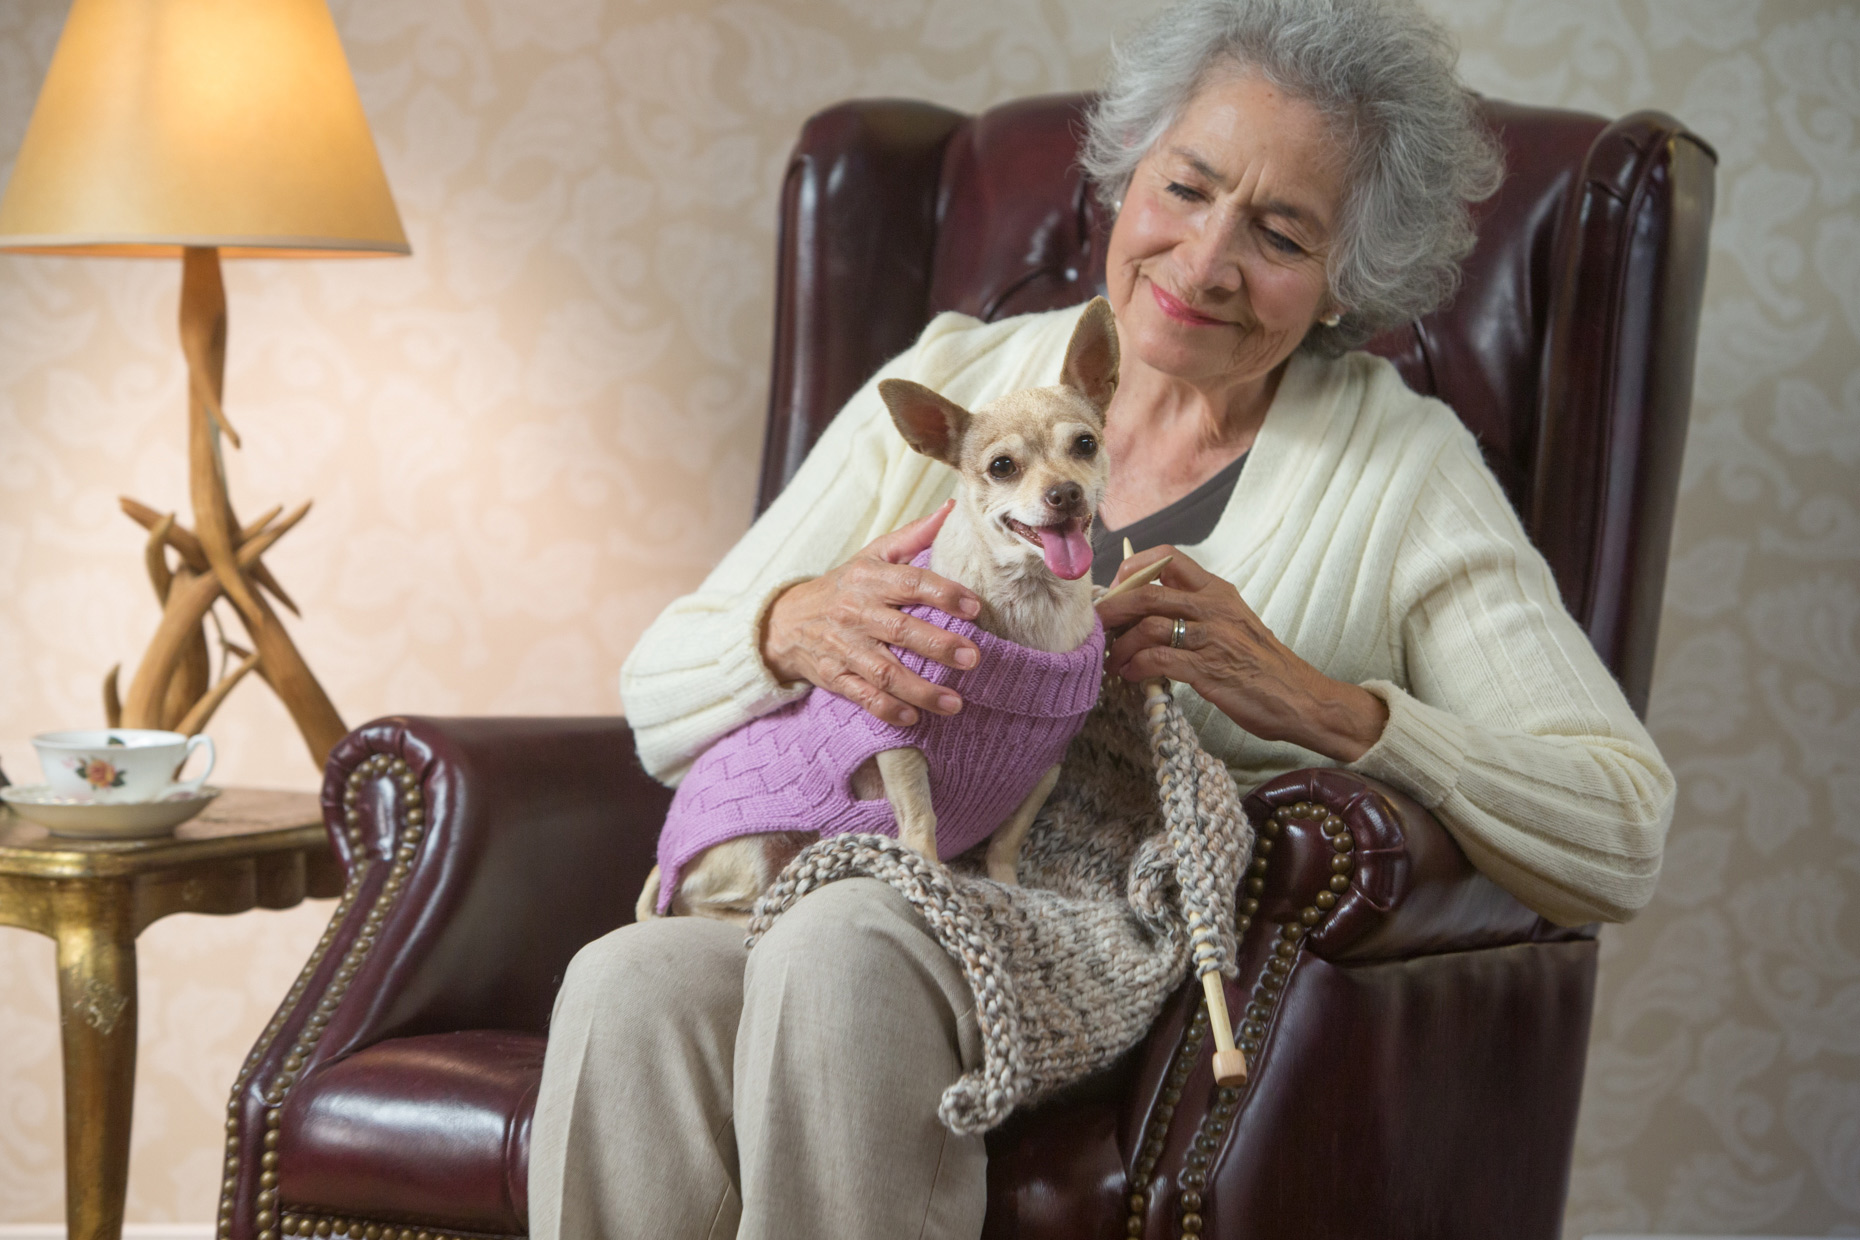 Commercial Lifestyle Photography | Senior woman knitting with dog